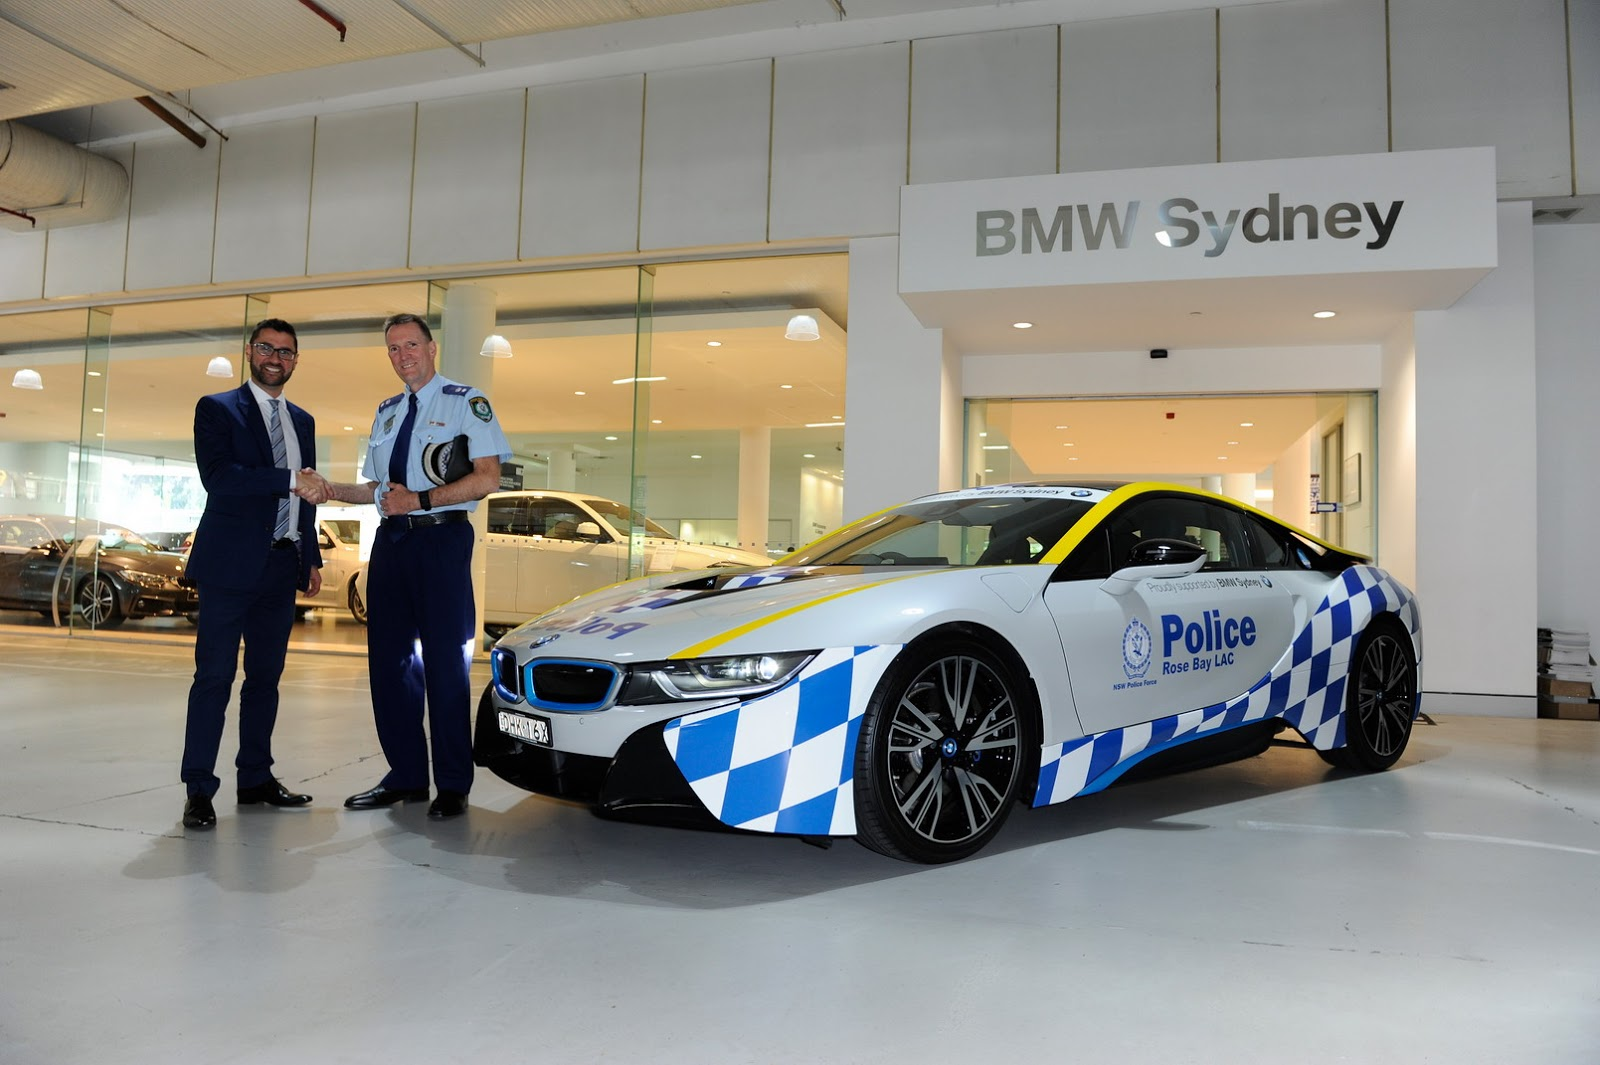 bmw i8 joins sydney police fleet to bring the community closer to the force